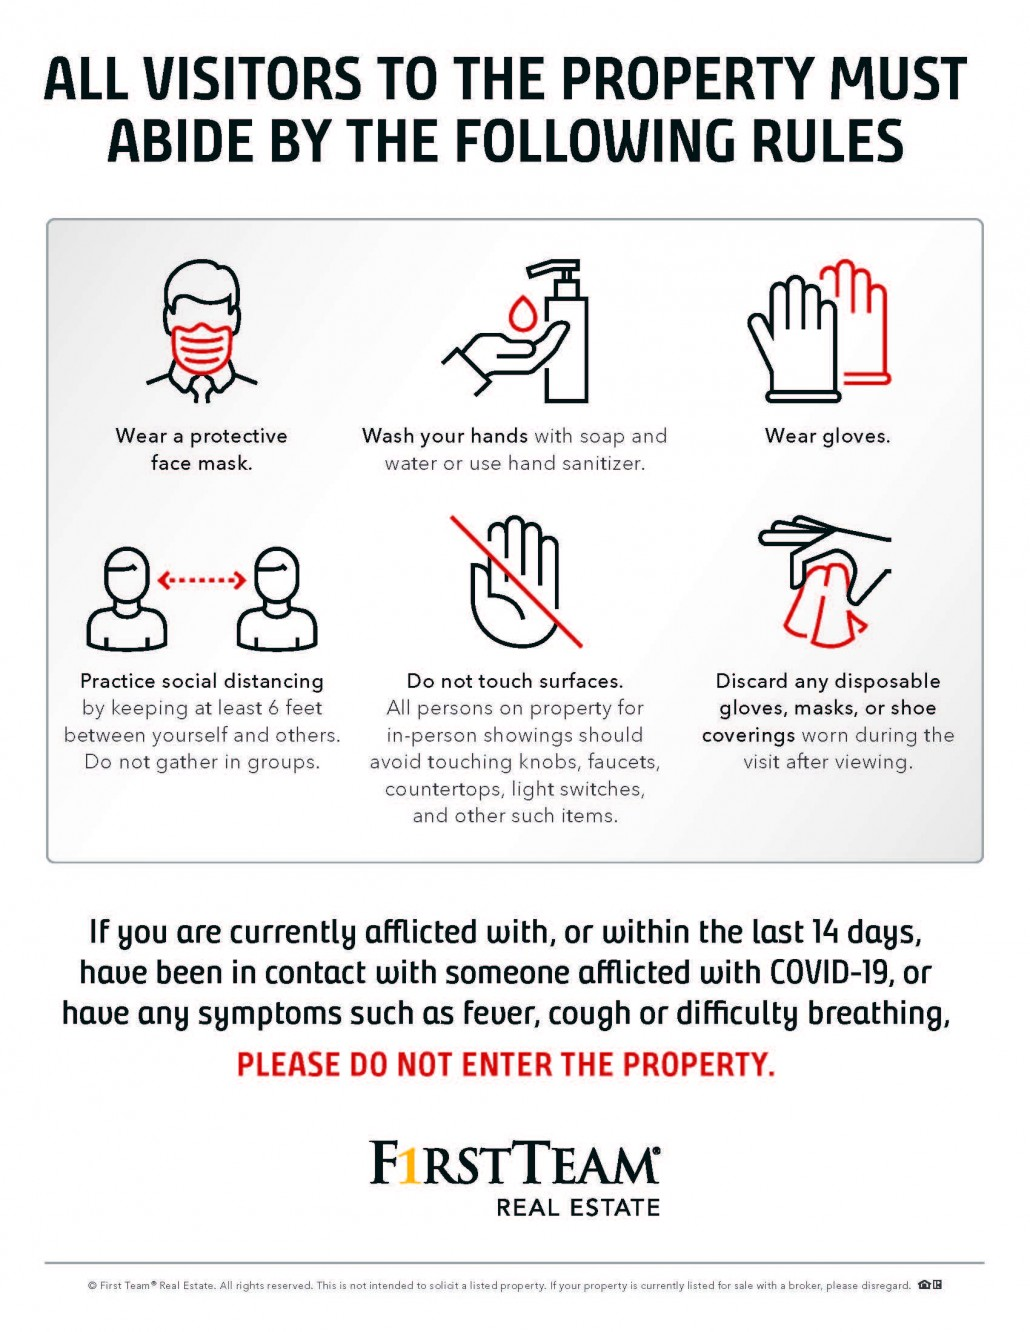 Flyer of safety precautions amid COVID-19 that home sellers are legally obligated to visibly post.